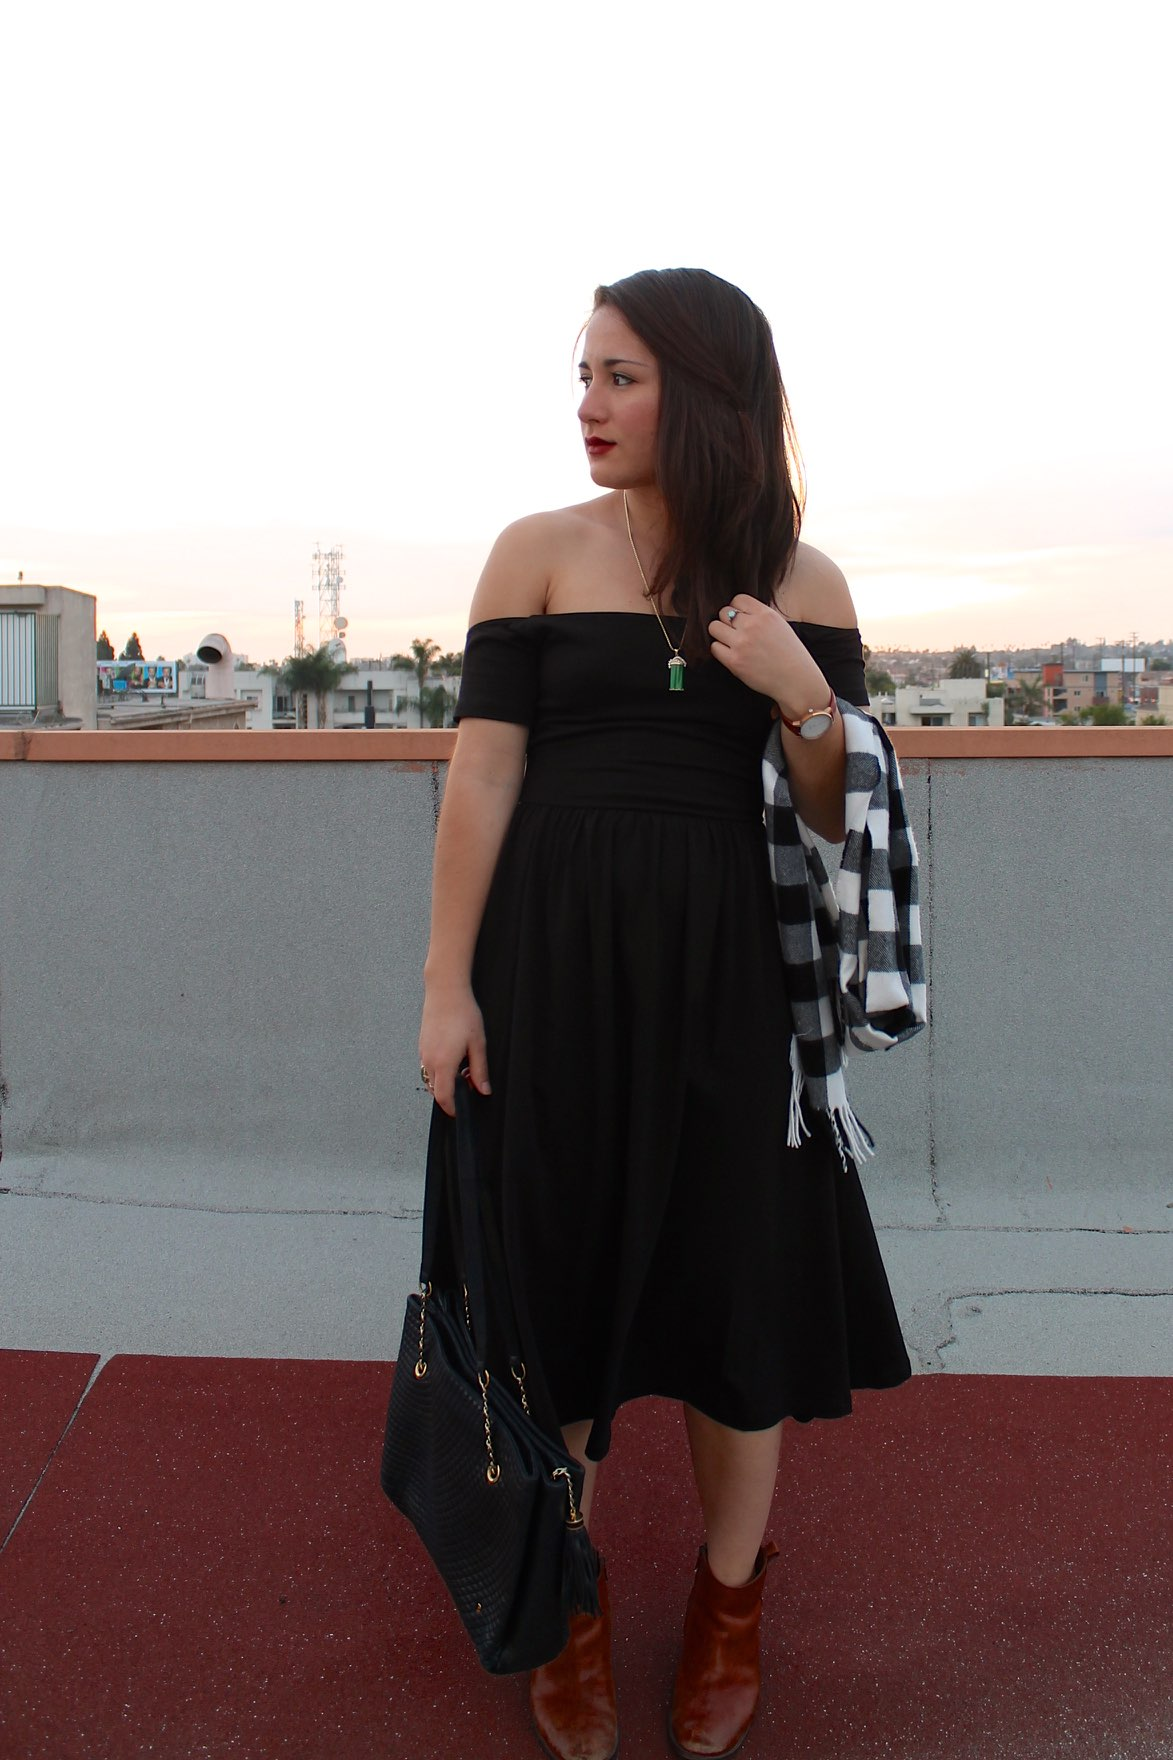 holiday #outfit: off-the-shoulder little black dress #style